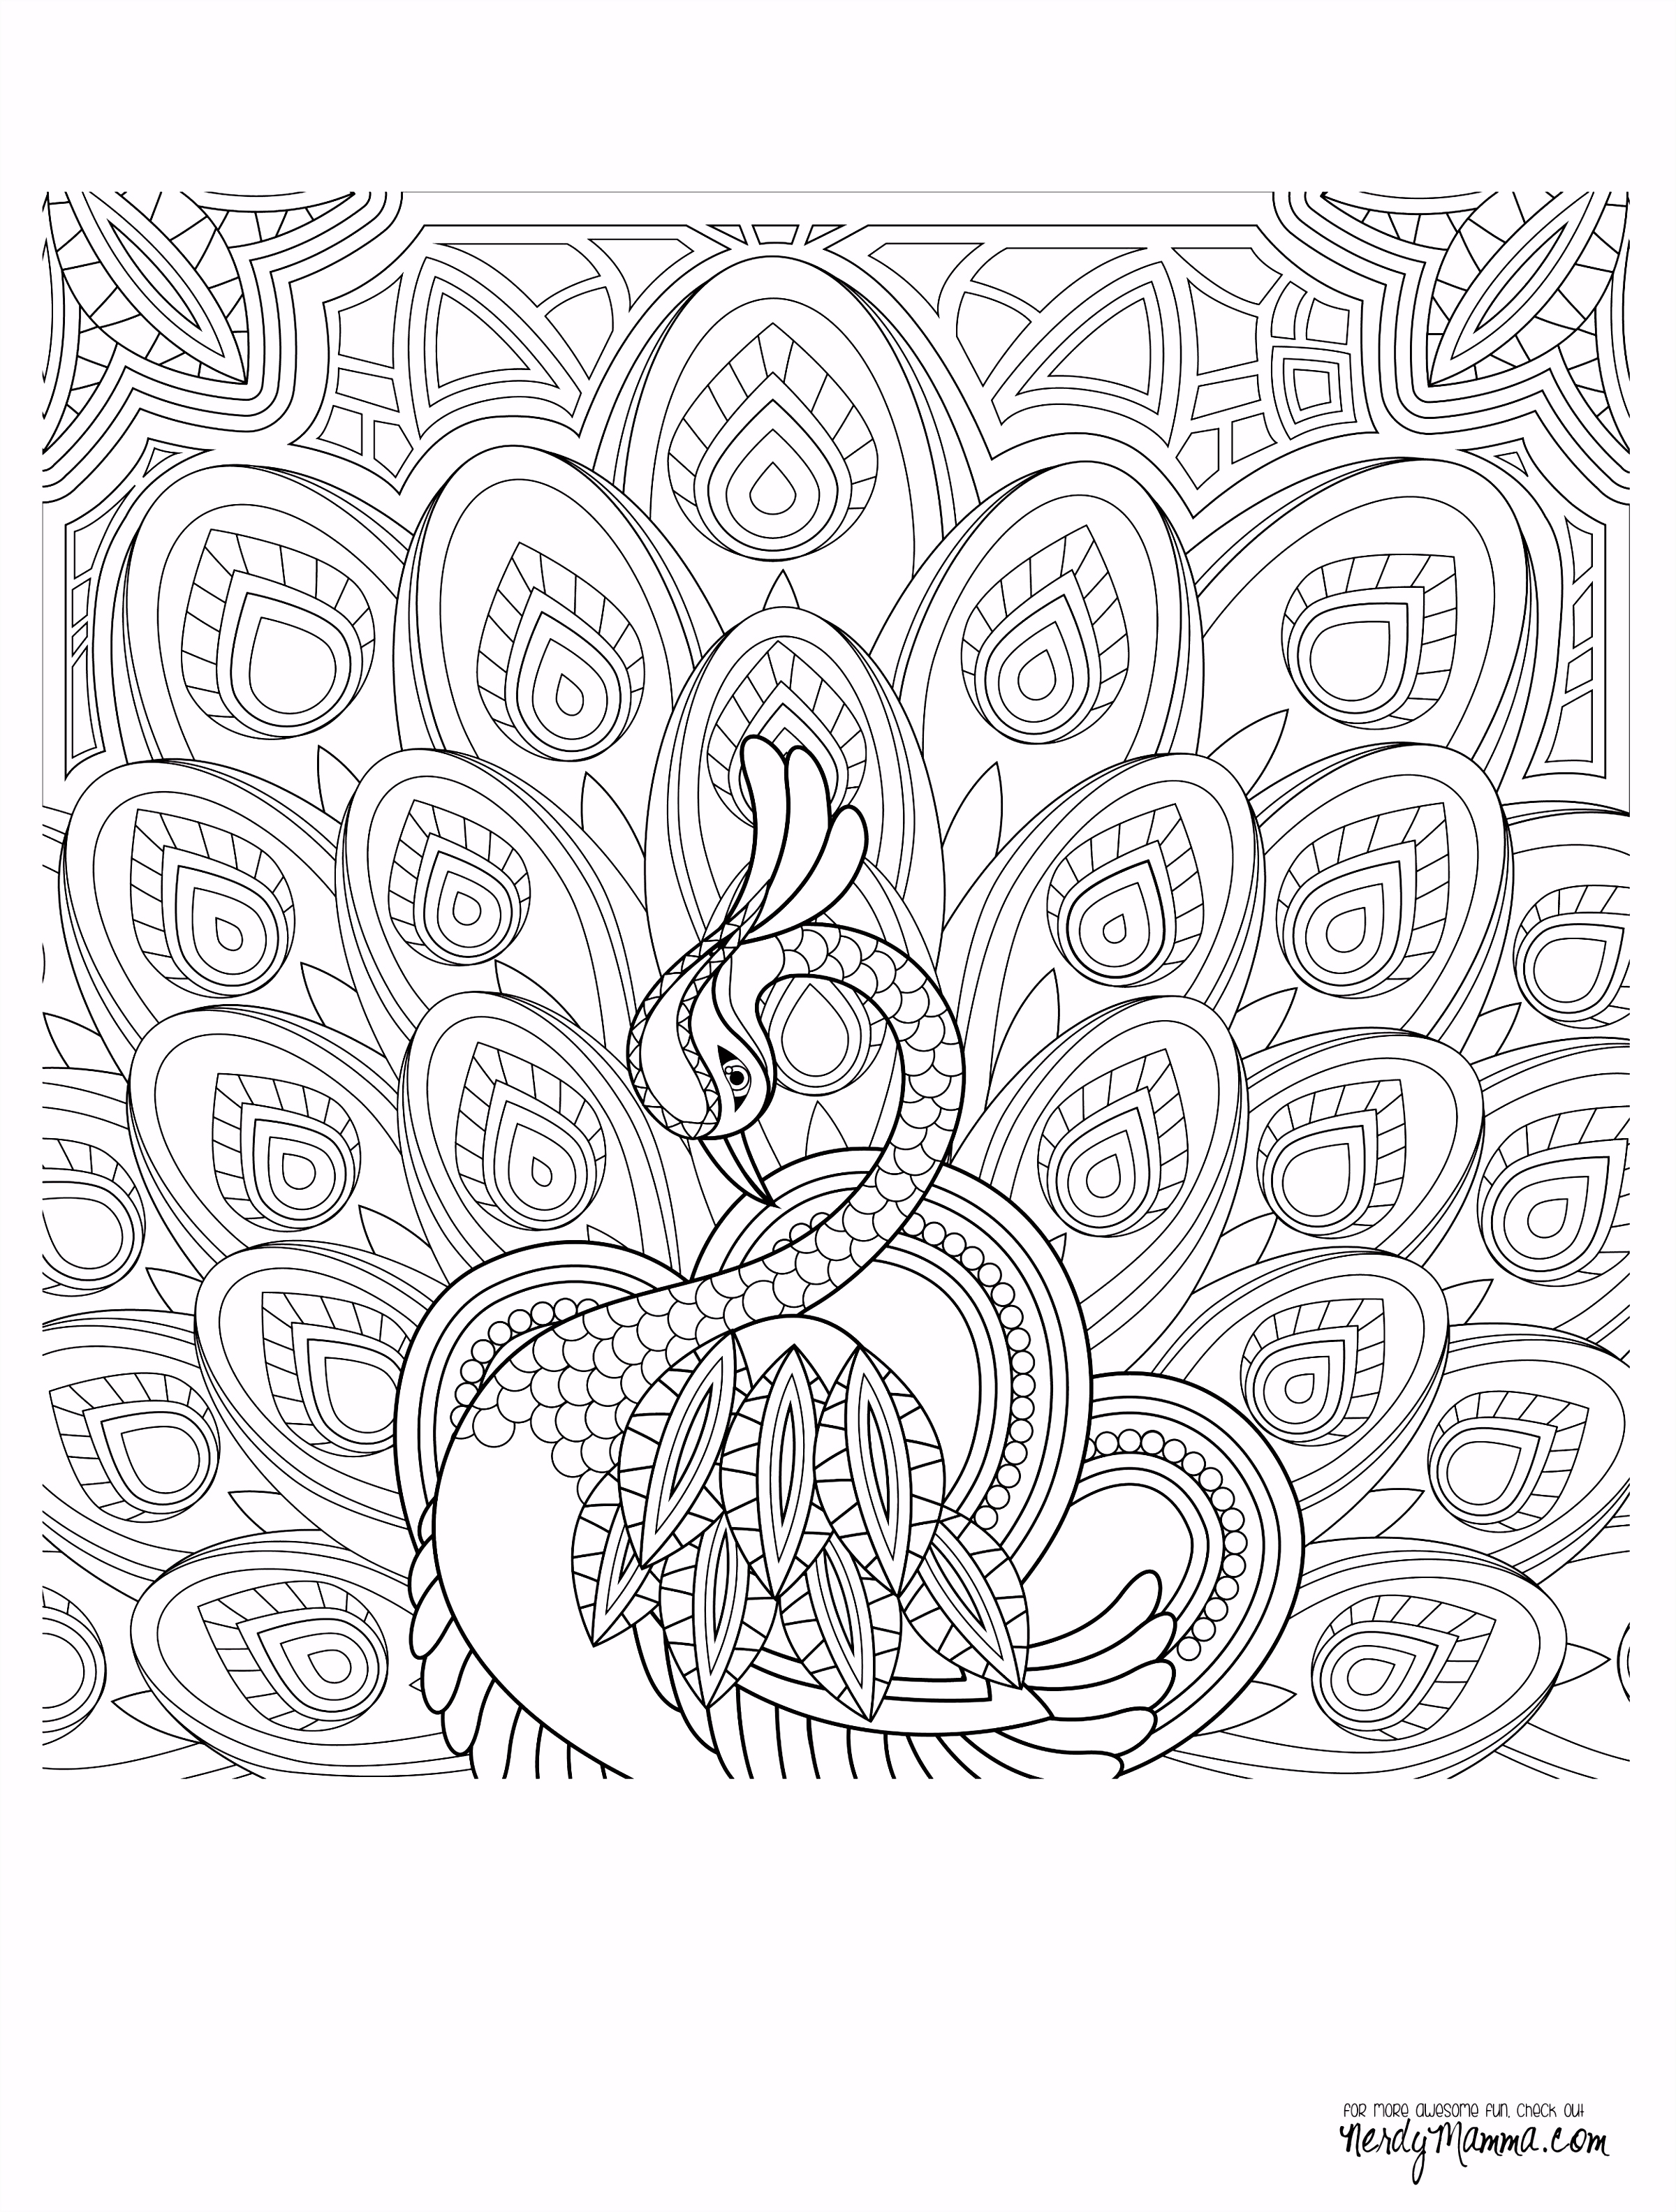 Katesgrove Page 4 of 85 Printable Coloring Pages